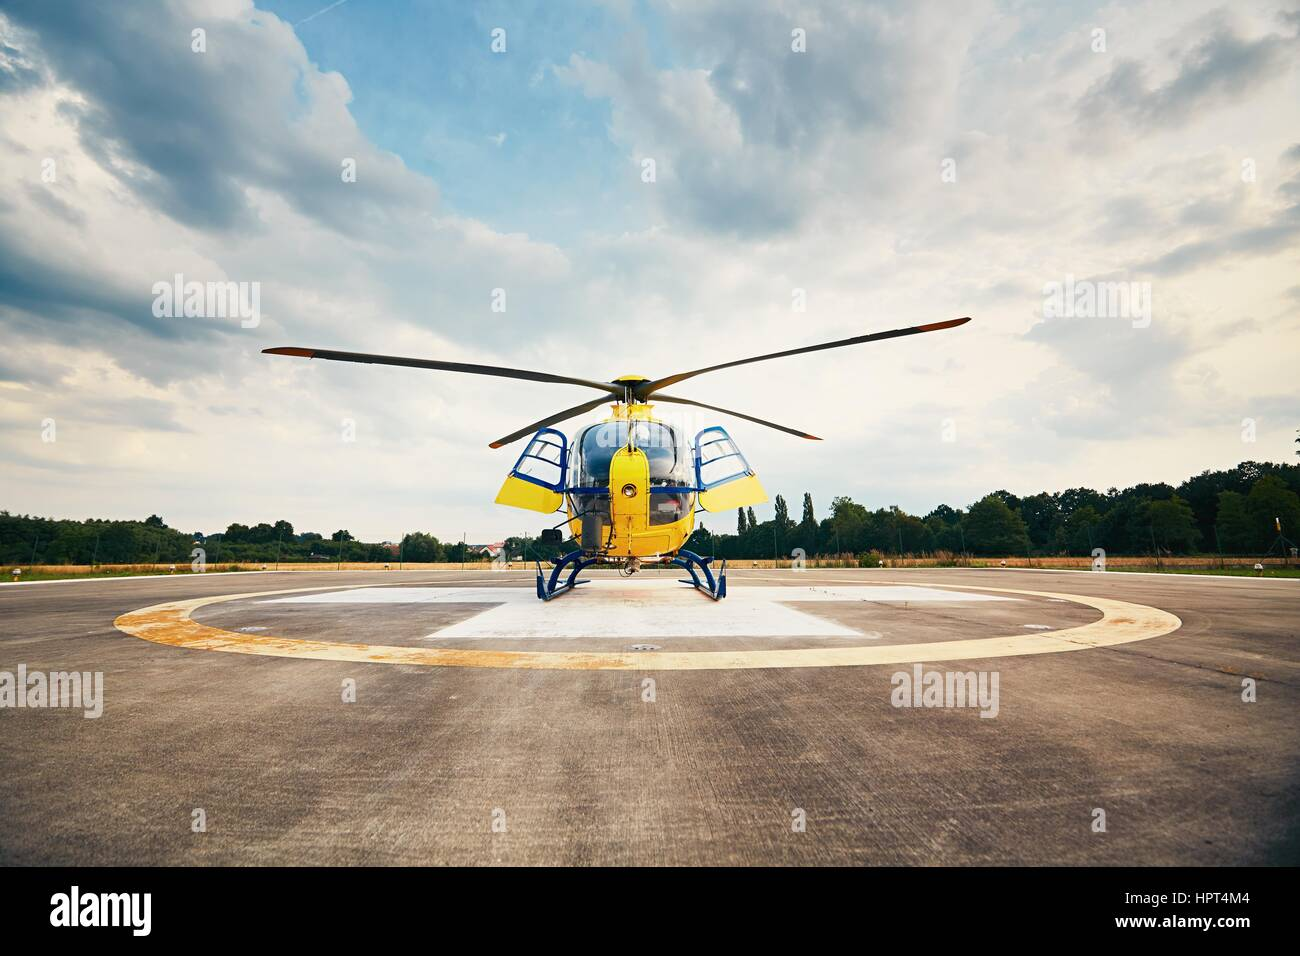 Air rescue service. Helicopter air ambulance is ready for take off at the heliport. - Stock Image